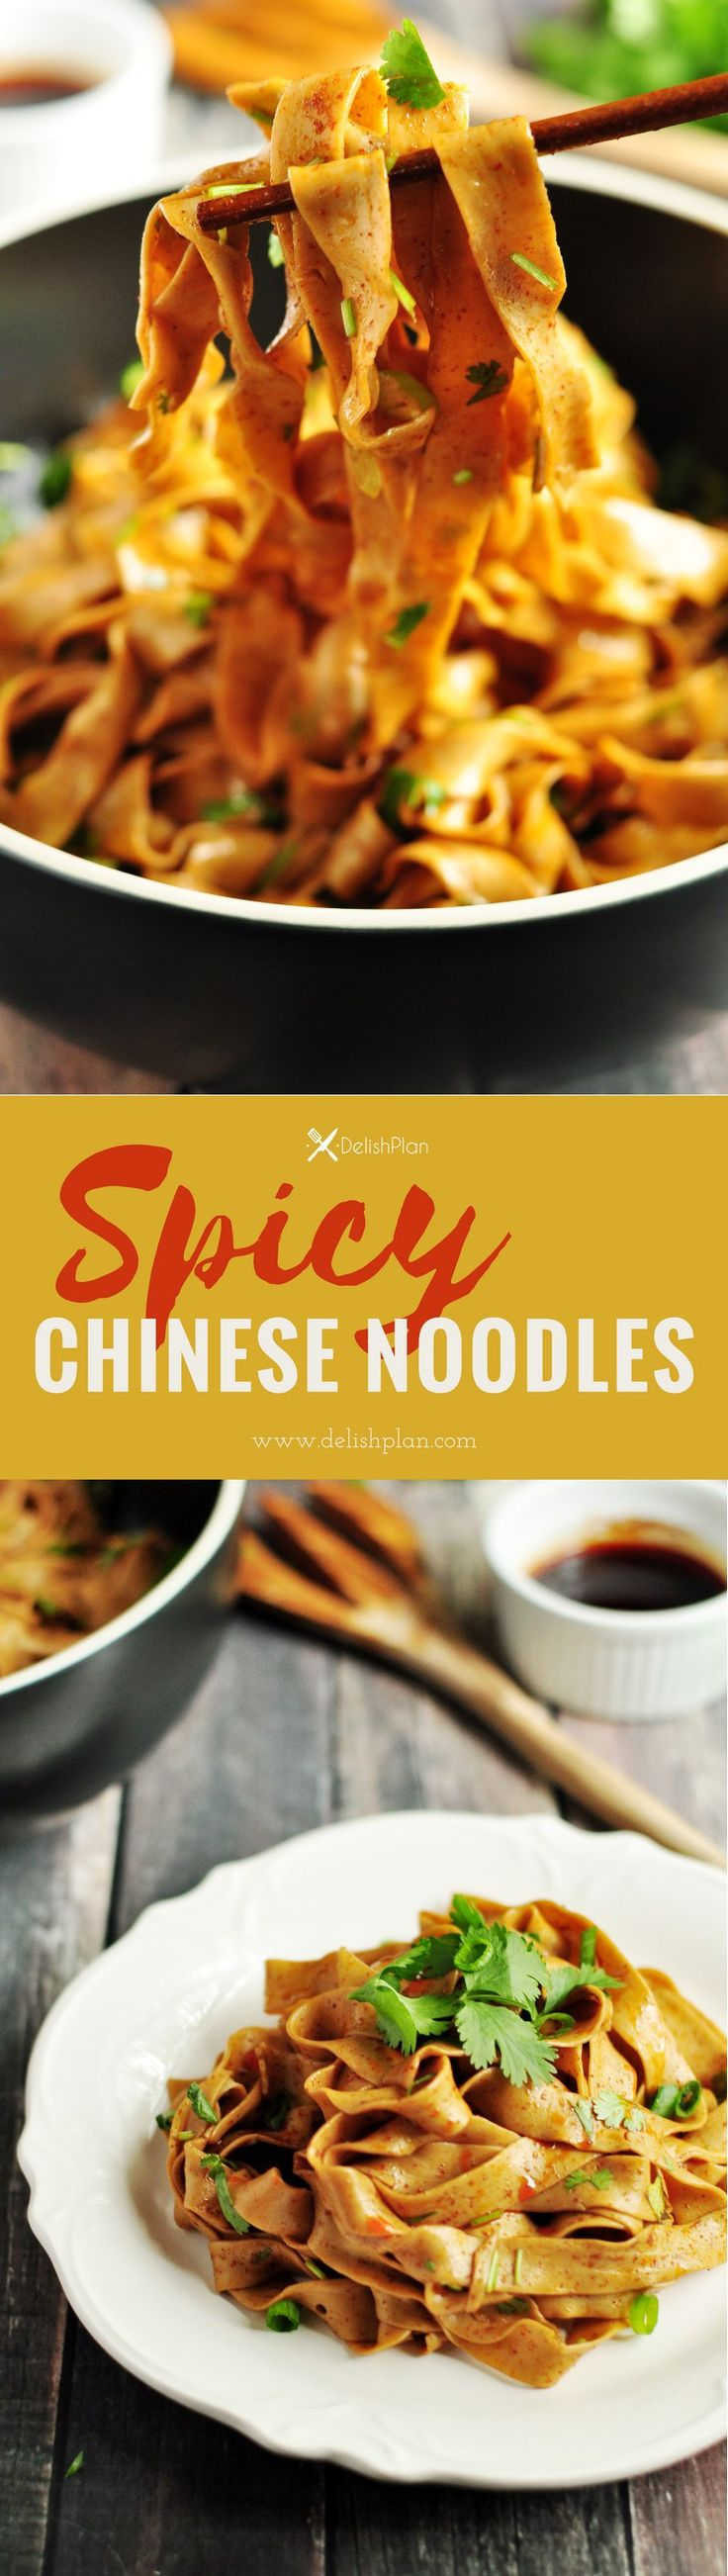 100+ Chinese noodle recipes on Pinterest | Asian noodle ...